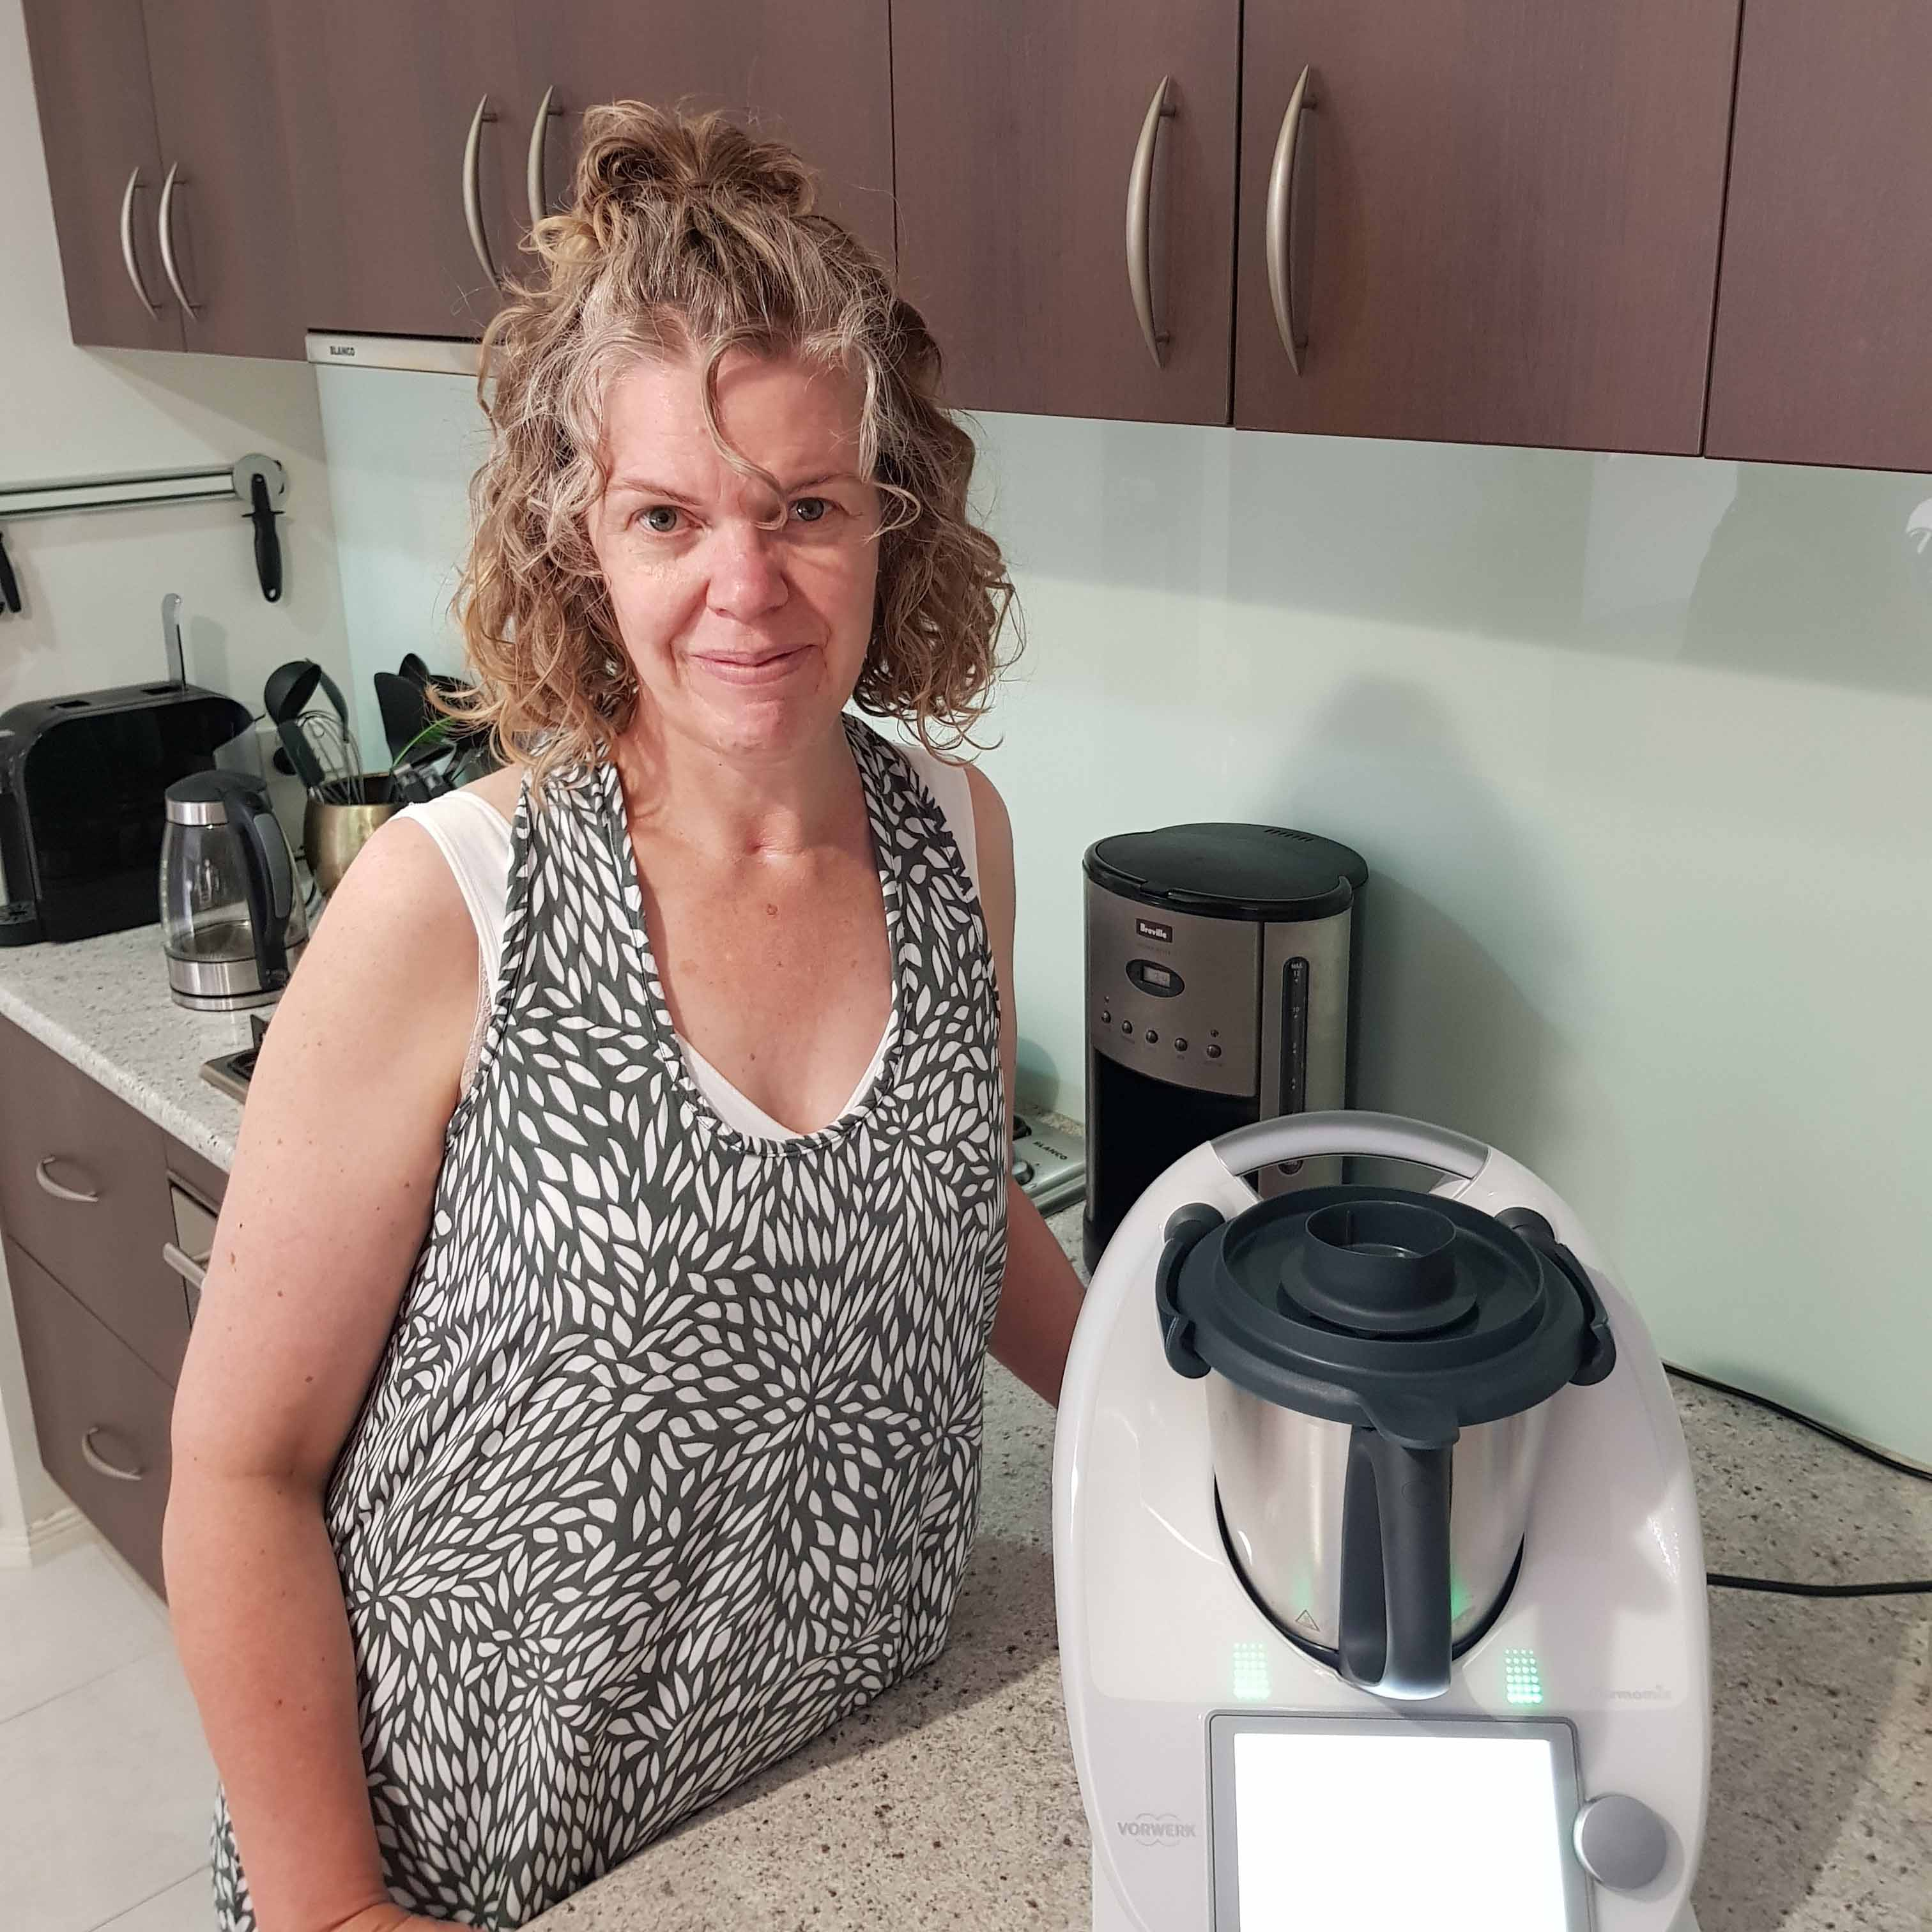 Lady standing beside her Thermomix